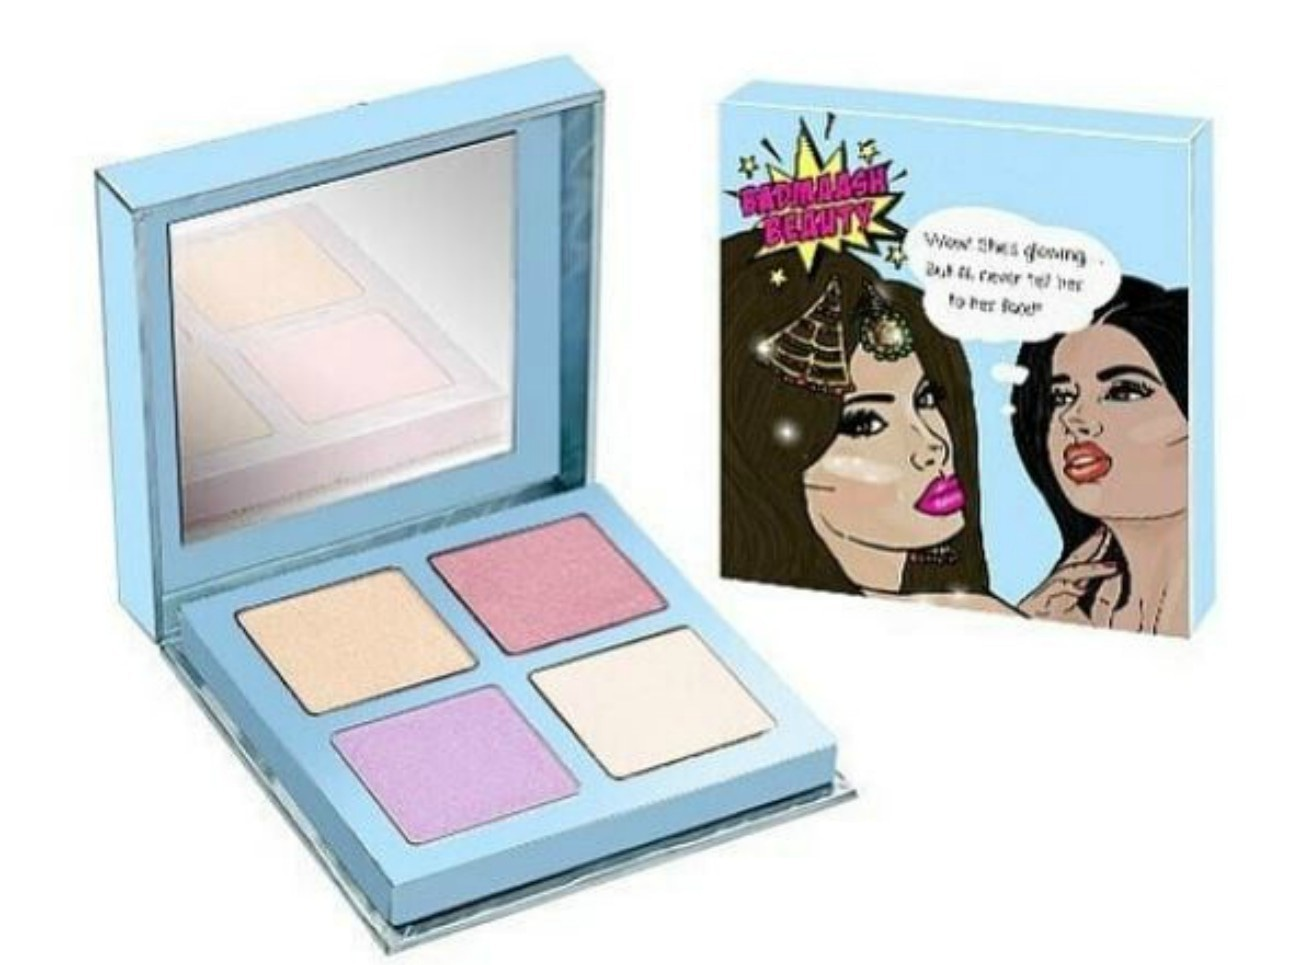 """The highlighter designed by Pakistani Martha Stewart says """"Wow! She's glowing...But I'll never tell her to her face!"""""""